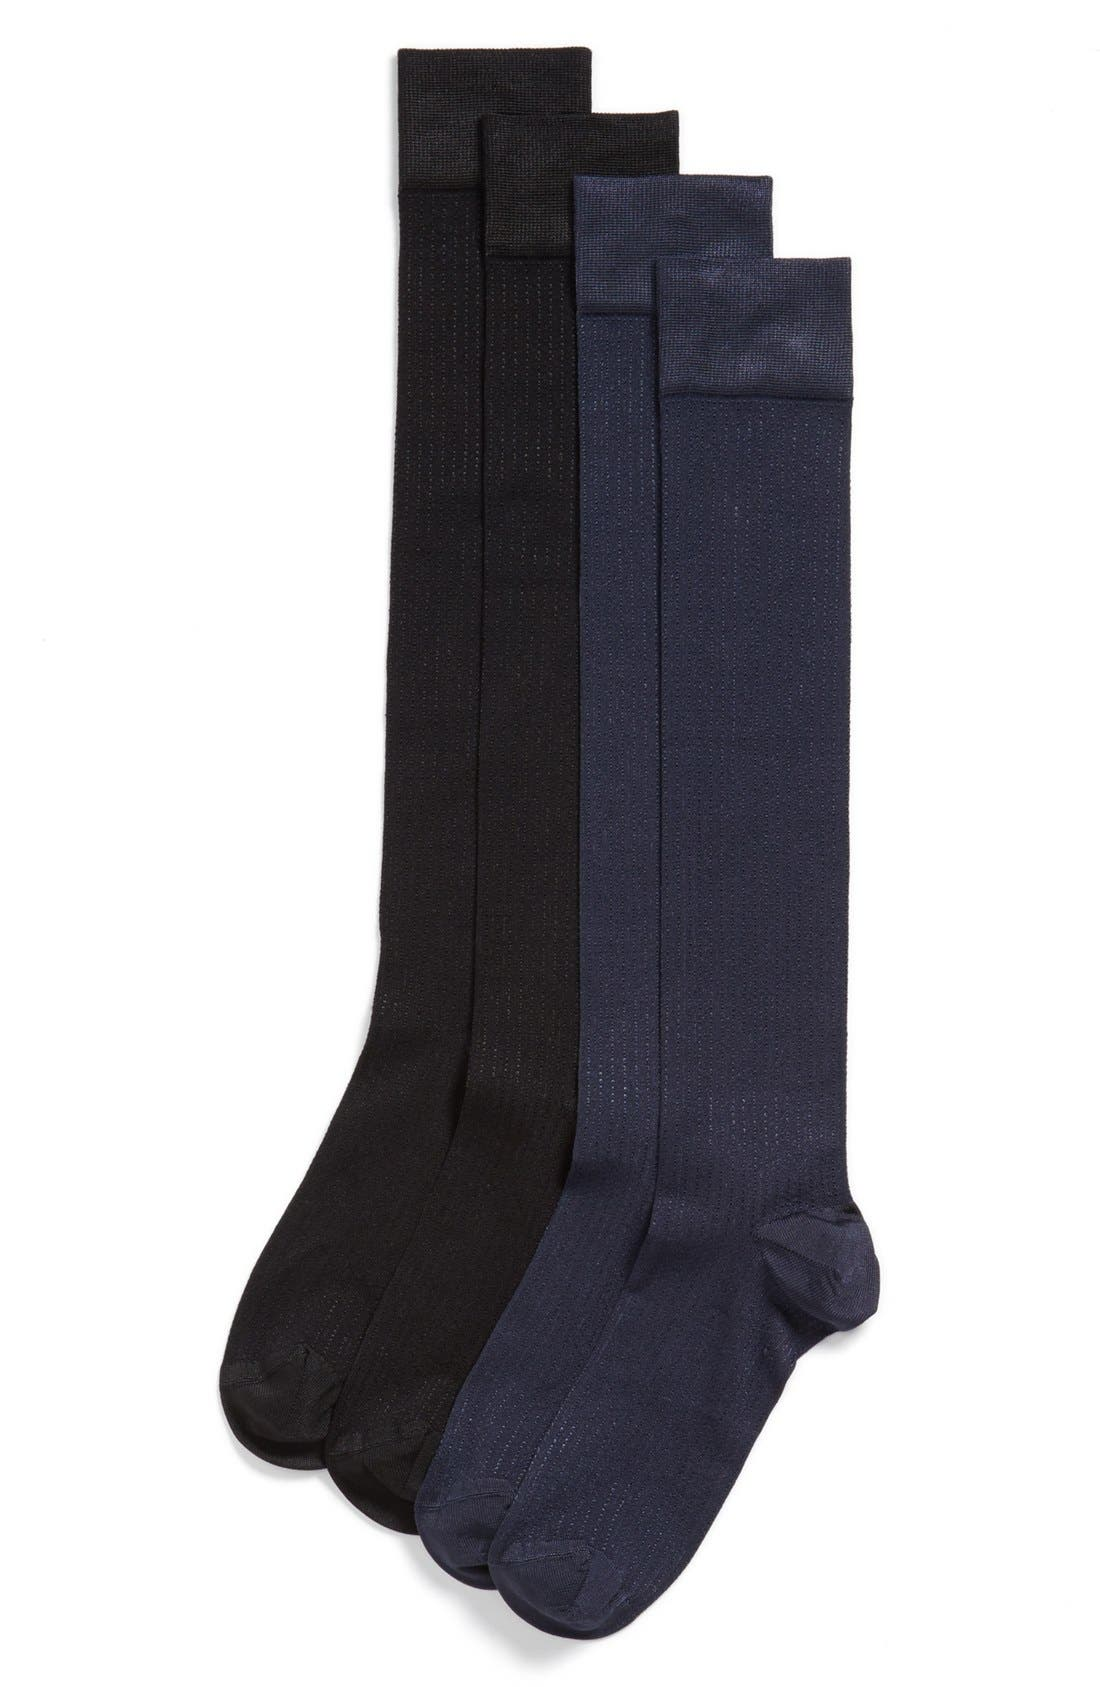 Alternate Image 1 Selected - Ralph Lauren 'Vertical Shine' Knee High Socks